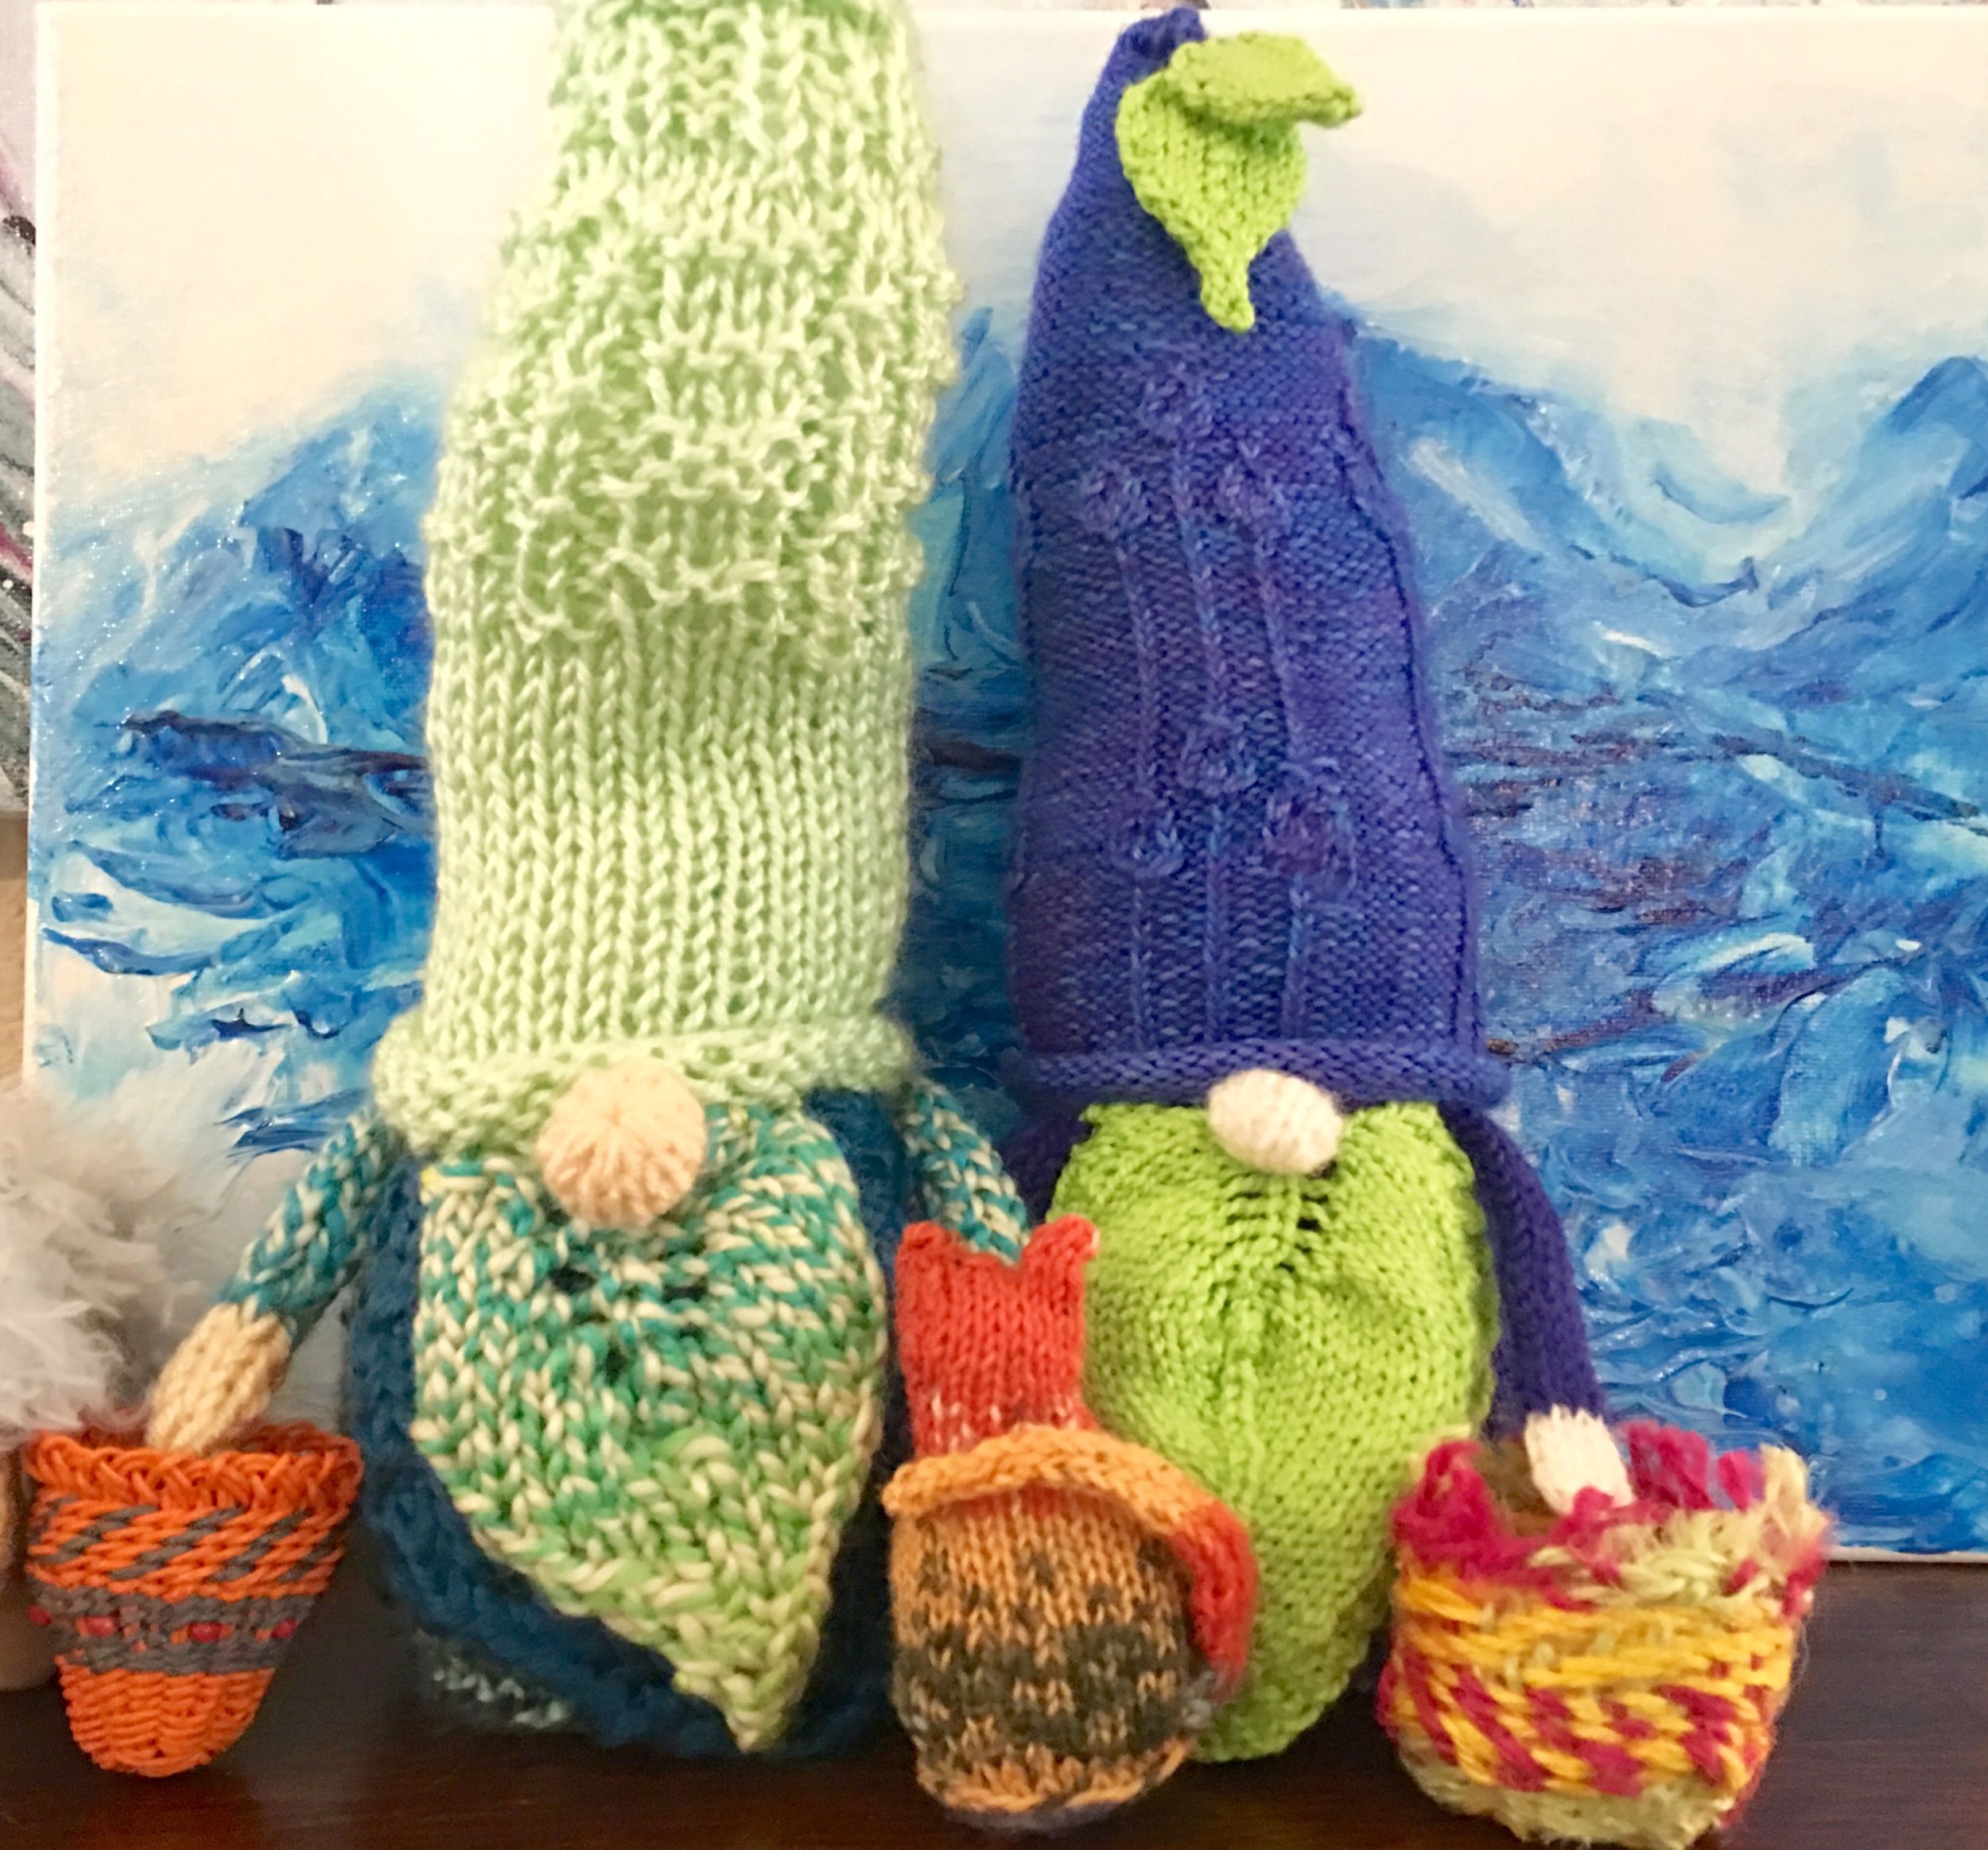 Periwinkle, Petunia & kitty - with their Easter baskets, headed for the painted mountains